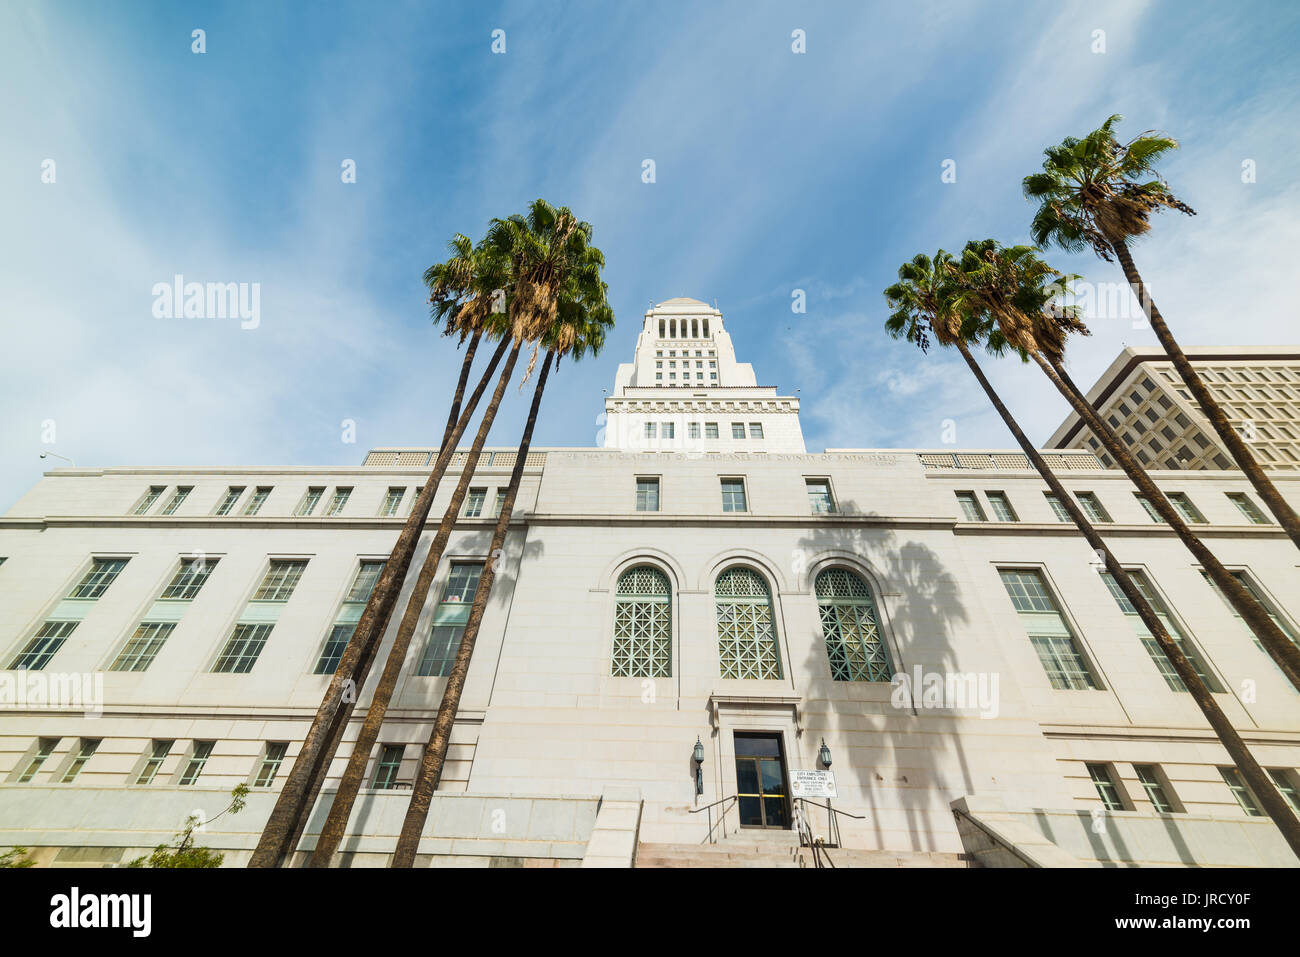 Los Angeles city hall in downtown L.A. - Stock Image